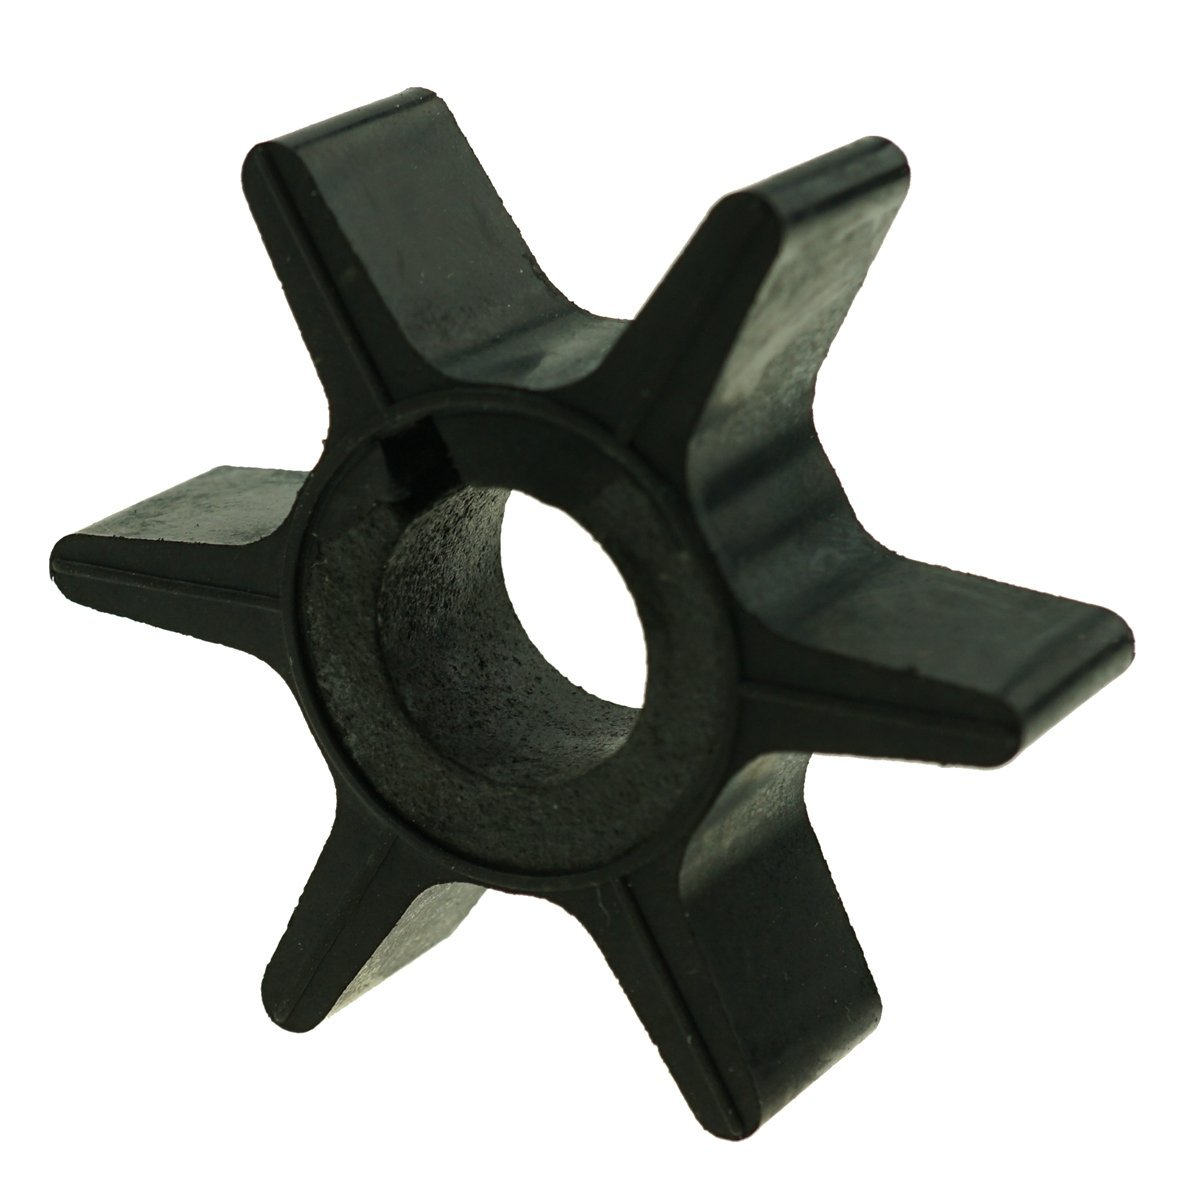 Pump Impeller For Chrysler Force Mercury 25 35 40 45 50 HP Outboard 47-F433065-2